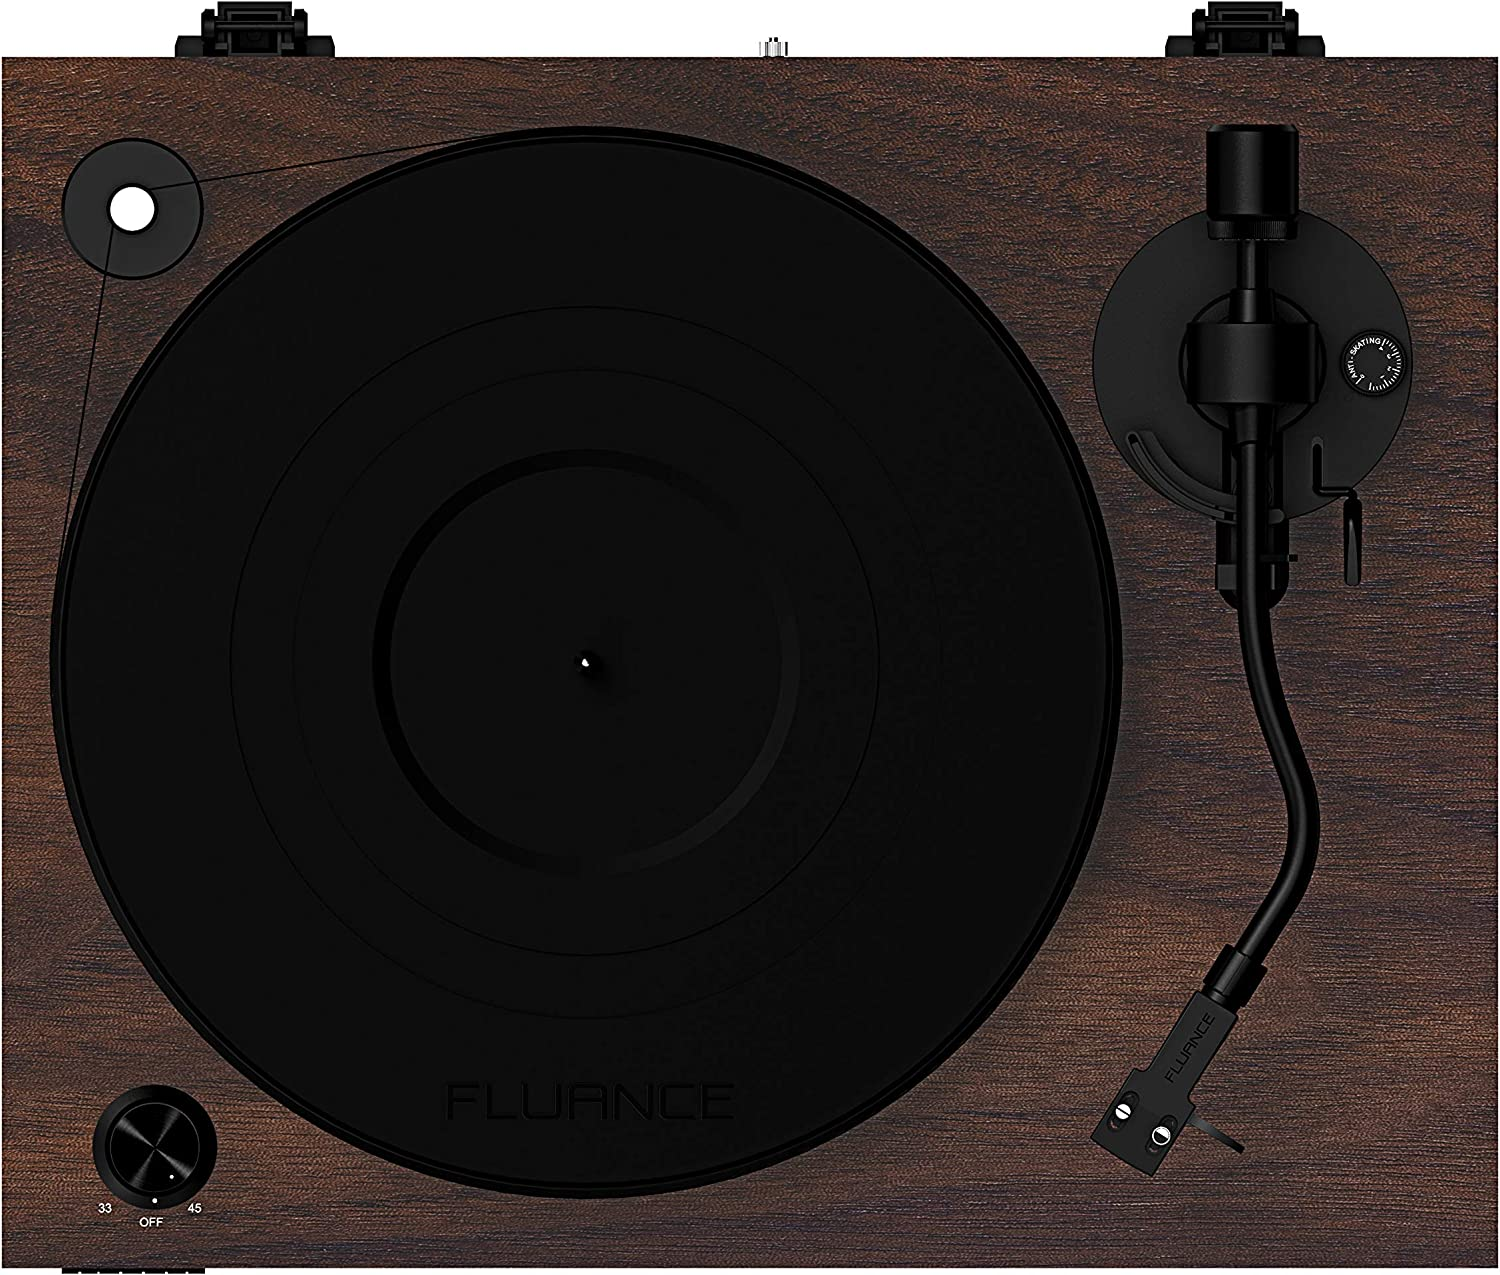 RT83W Speed Control Motor Vibration Isolation Feet Fluance Reference High Fidelity Vinyl Turntable Record Player with 2M Red Cartridge Solid Wood Plinth Walnut